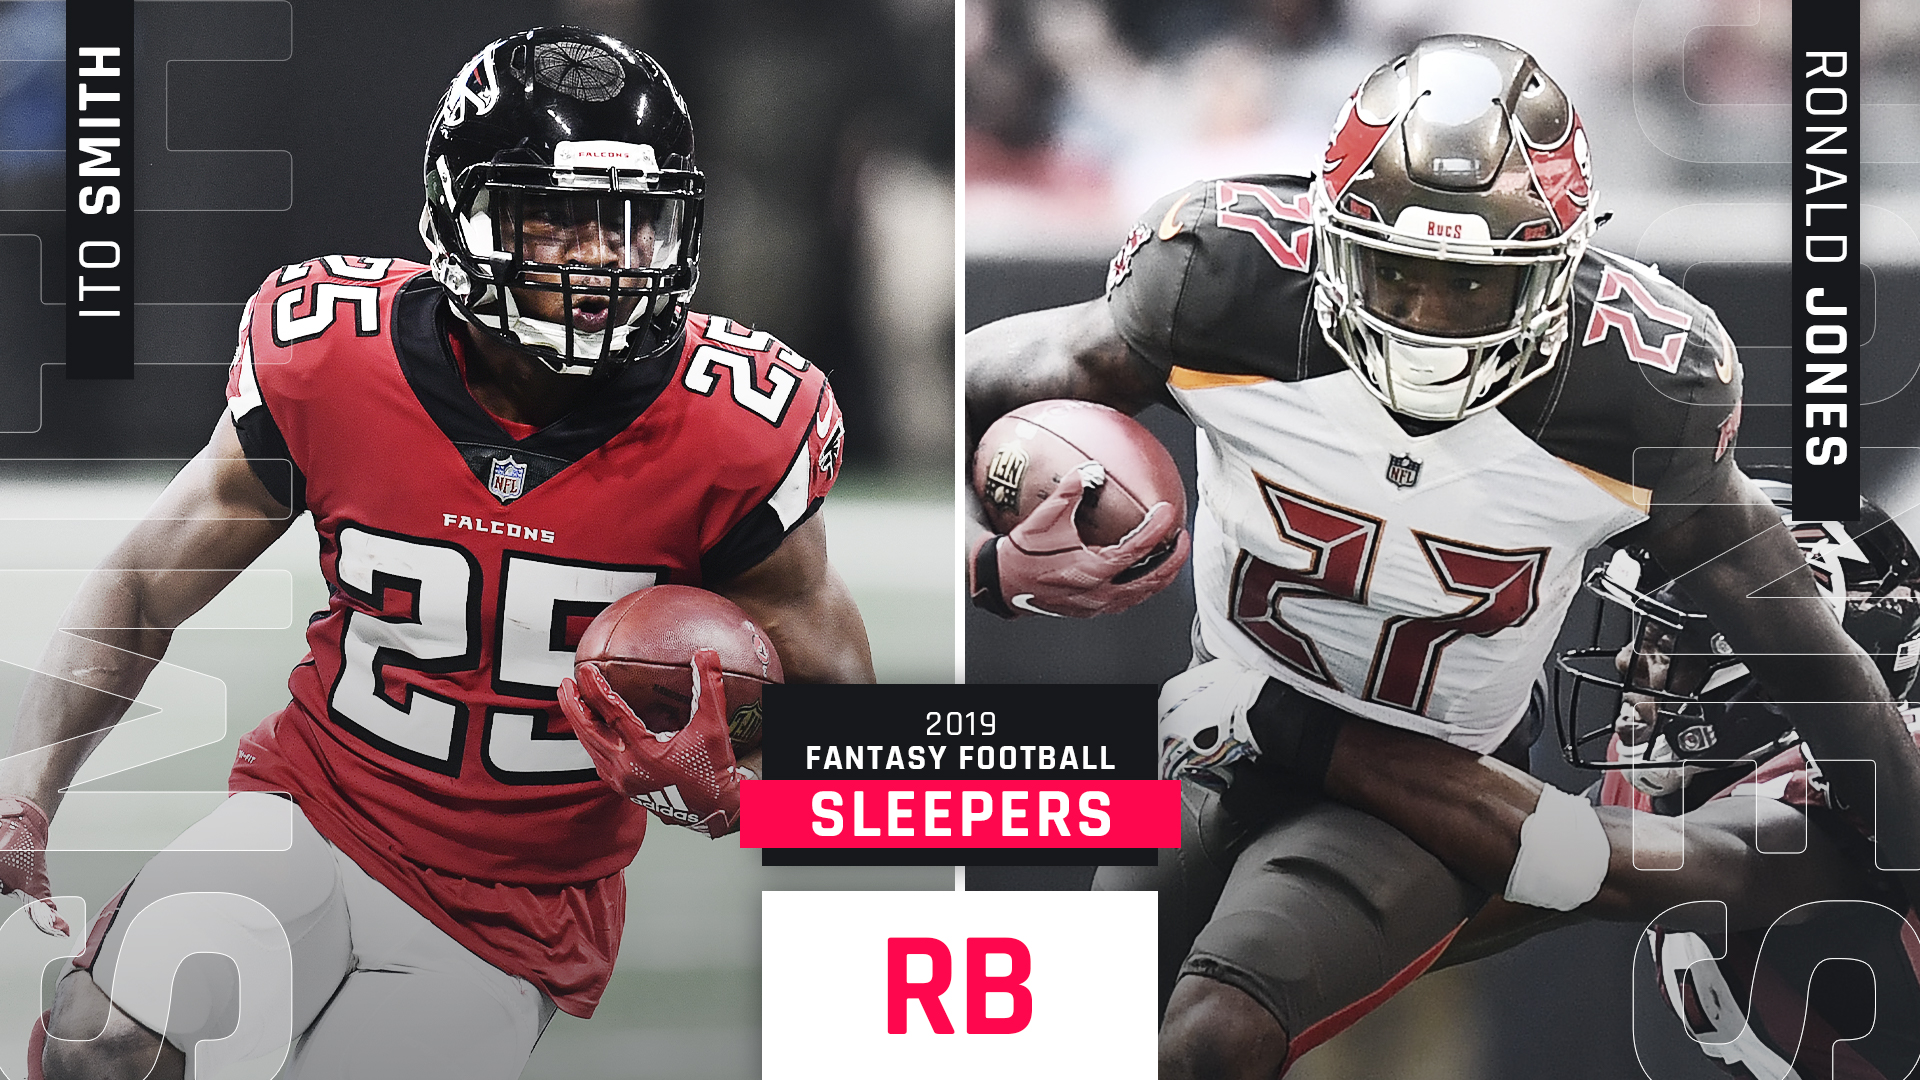 Fantasy Football Sleepers 2019: Running Backs | Sporting News